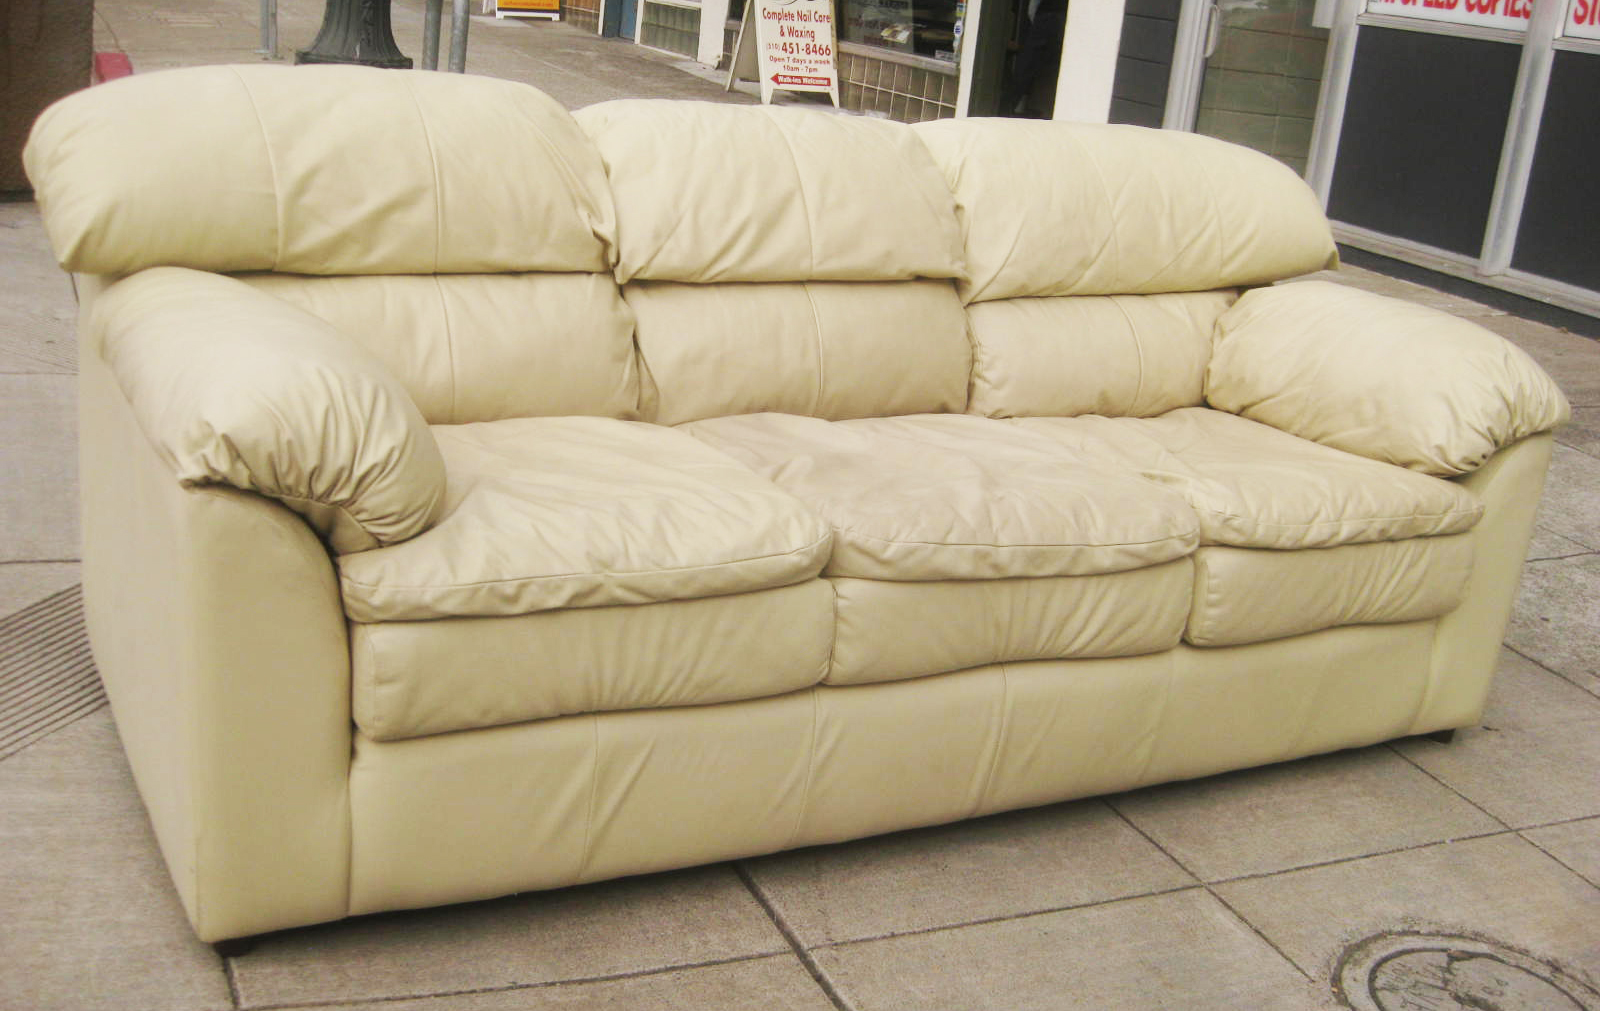 Beige Ledercouch Uhuru Furniture & Collectibles: Sold - Beige Leather Sofa